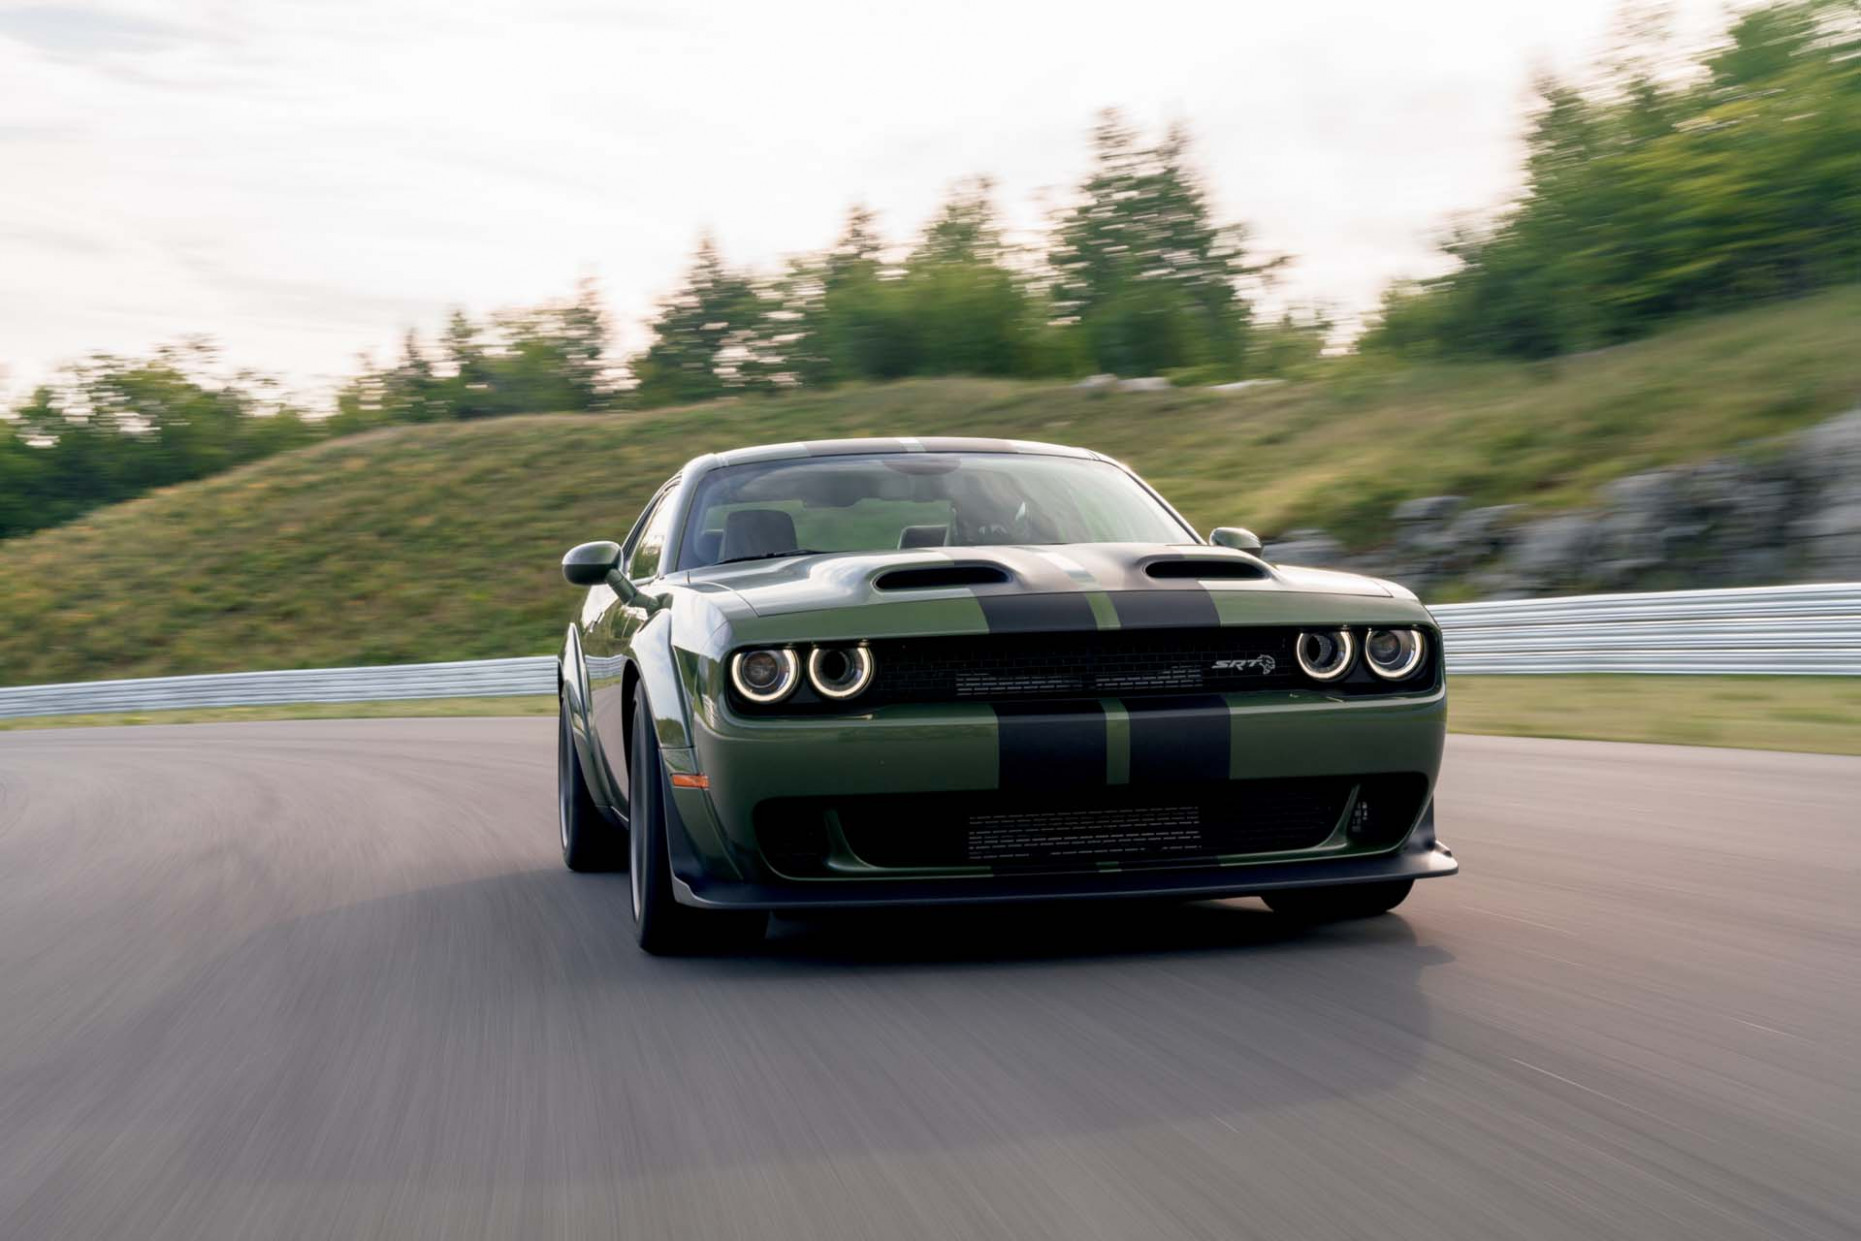 12 Dodge Challenger preview